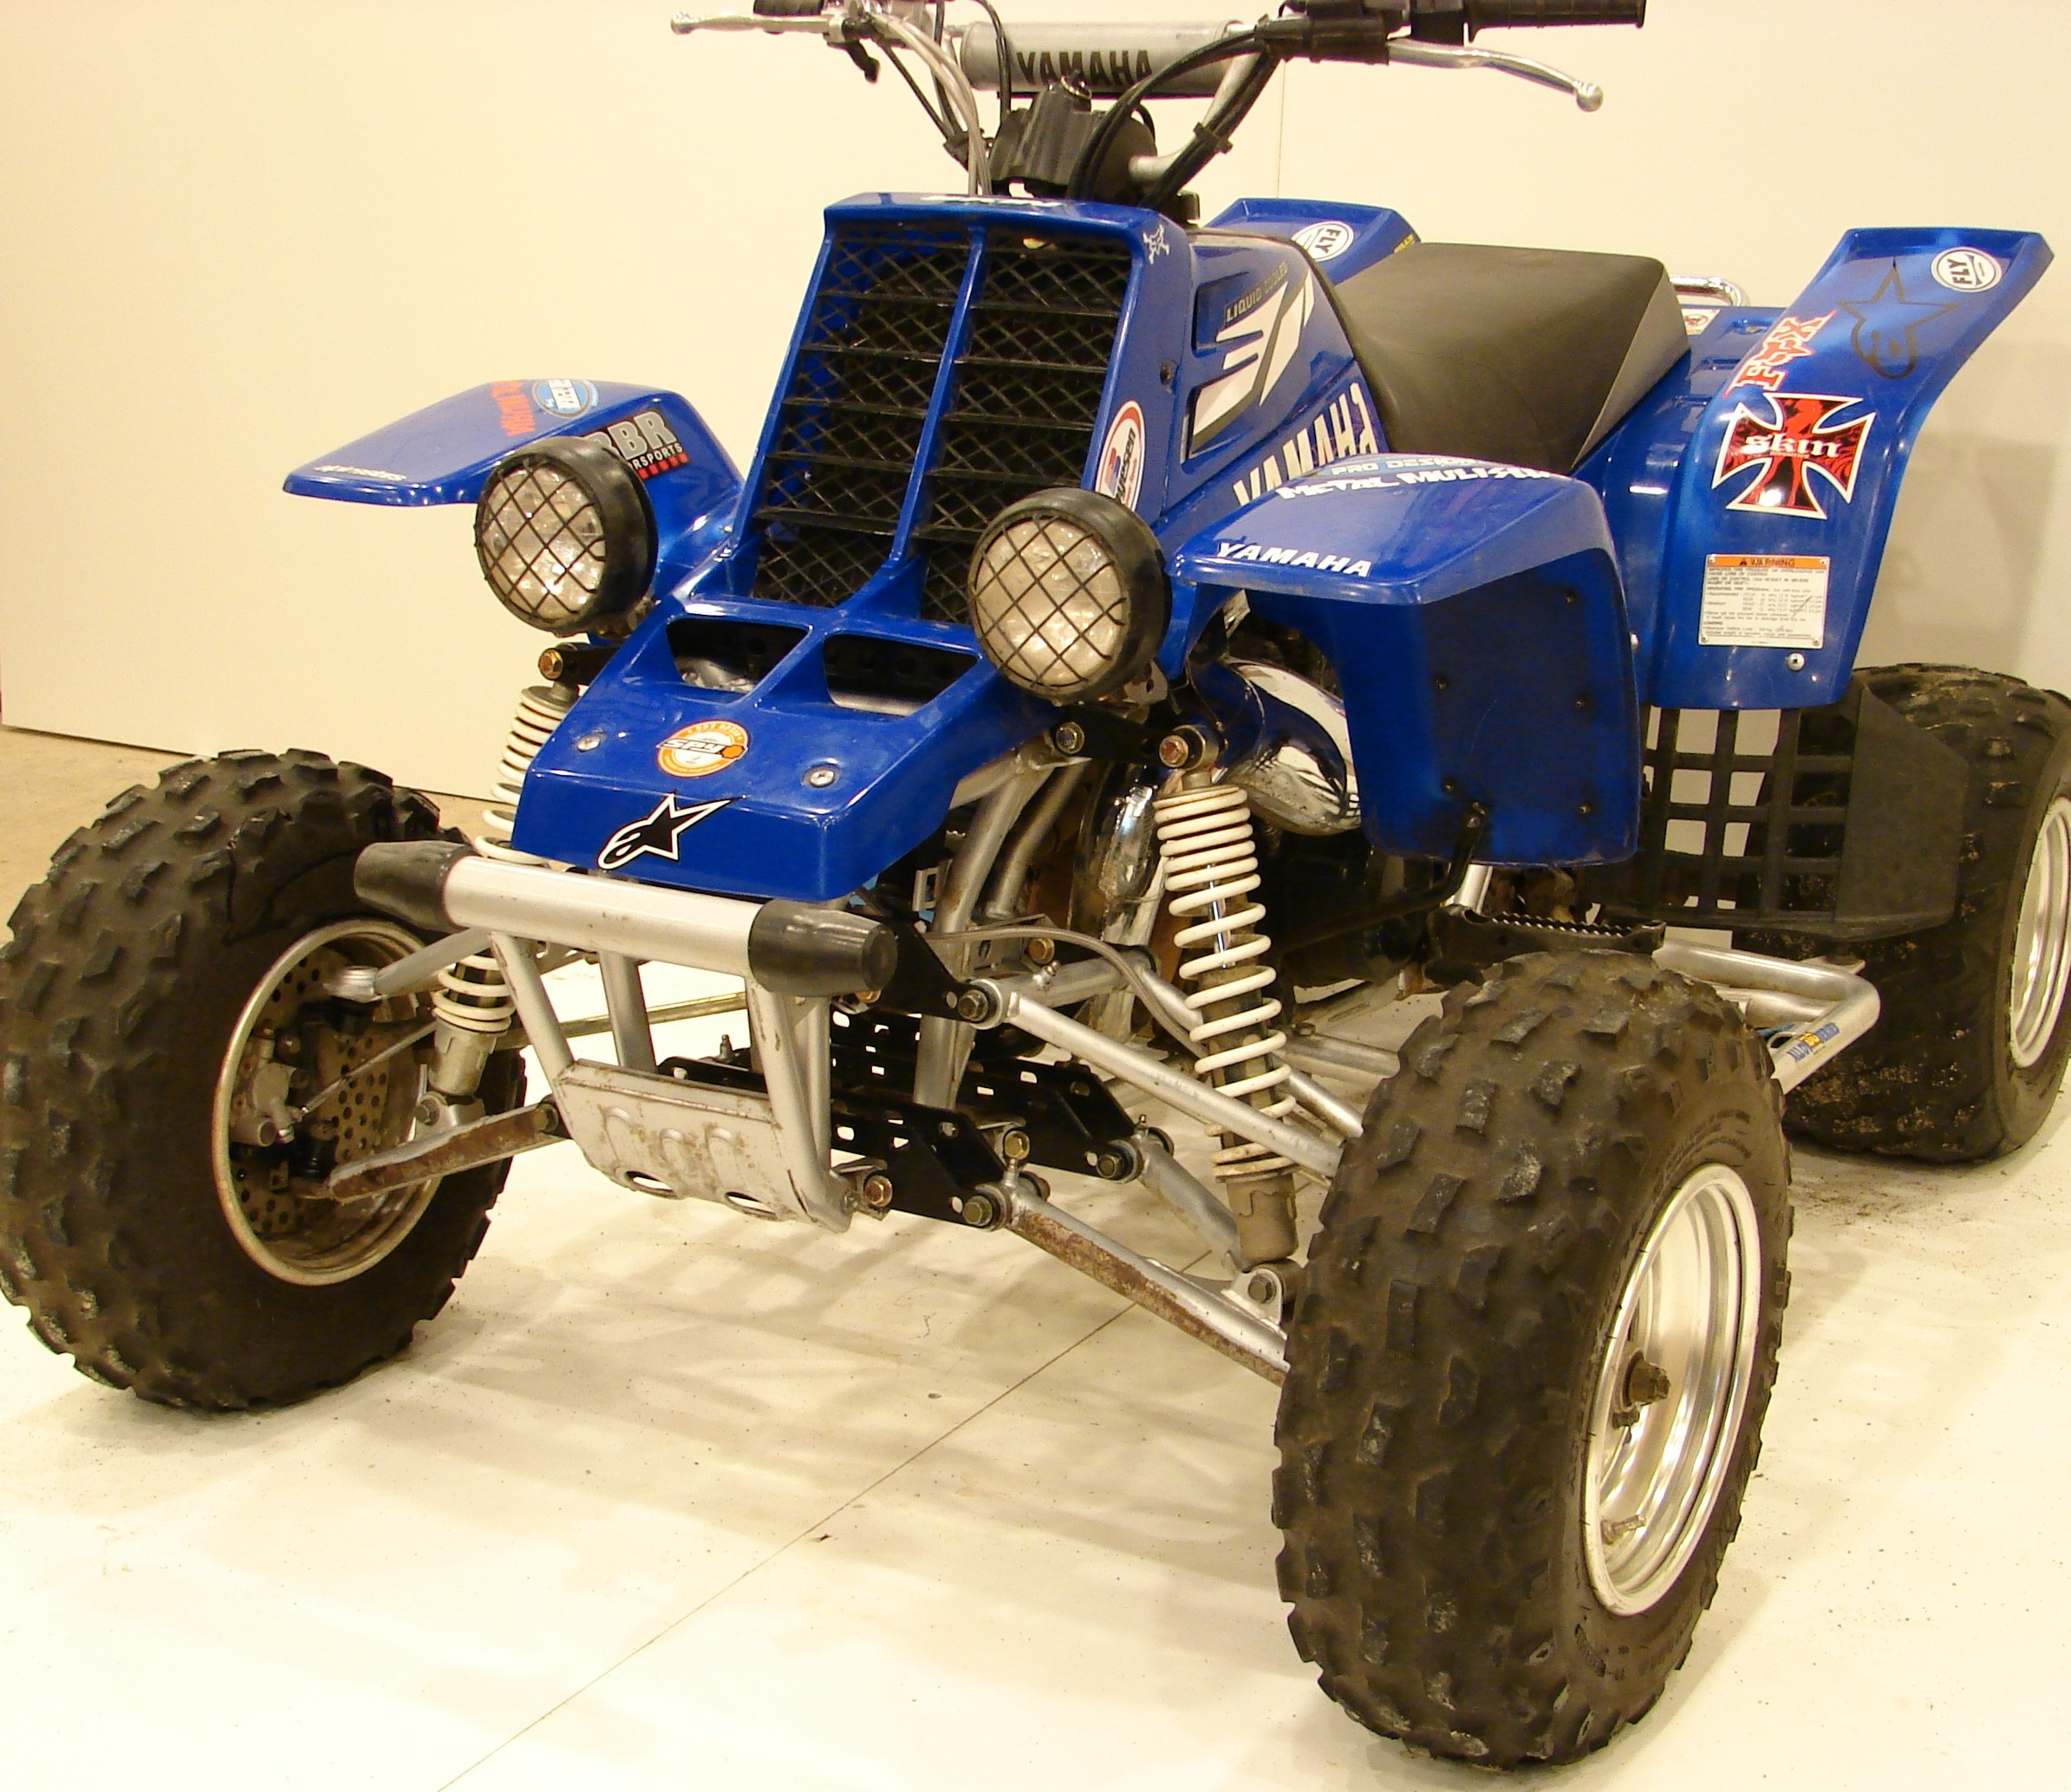 Yamaha Banshee Twin as well Bc A Z besides S L additionally Wiring as well Coolster Cc Atv Wiring Diagram Wiring Diagram For Cc Wheeler Beautiful Yamaha Atv Wiring Diagram Yamaha Banshee Wiring K X. on yamaha banshee wiring diagram